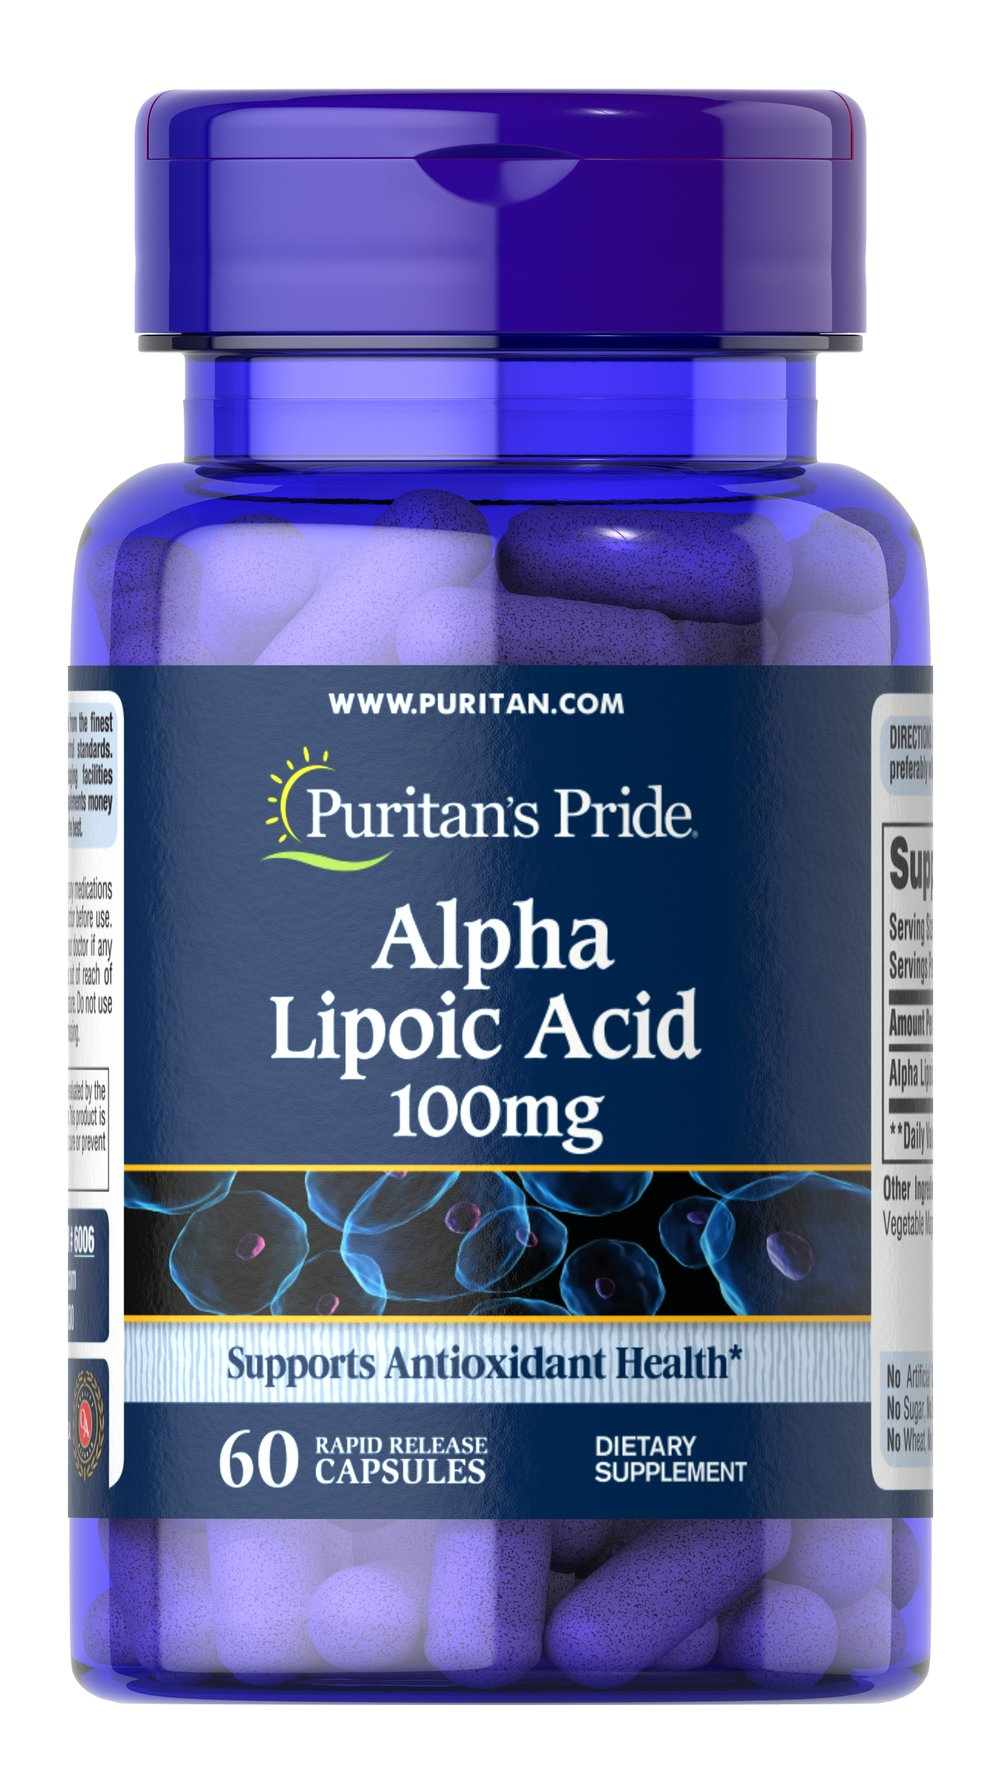 "Alpha Lipoic Acid 100 mg <p>Alpha Lipoic Acid (ALA) helps metabolize sugar, especially in muscles, where it promotes energy.**</p><p>ALA is also beneficial for liver health, and helps to revitalize the underlying structure of the skin so it can look healthier and more radiant.**</p><p> ALA is often called the ""universal antioxidant"" for its ability to help neutralize cell-damaging free radicals.** </p> 60 Capsules 100 mg $7.49"